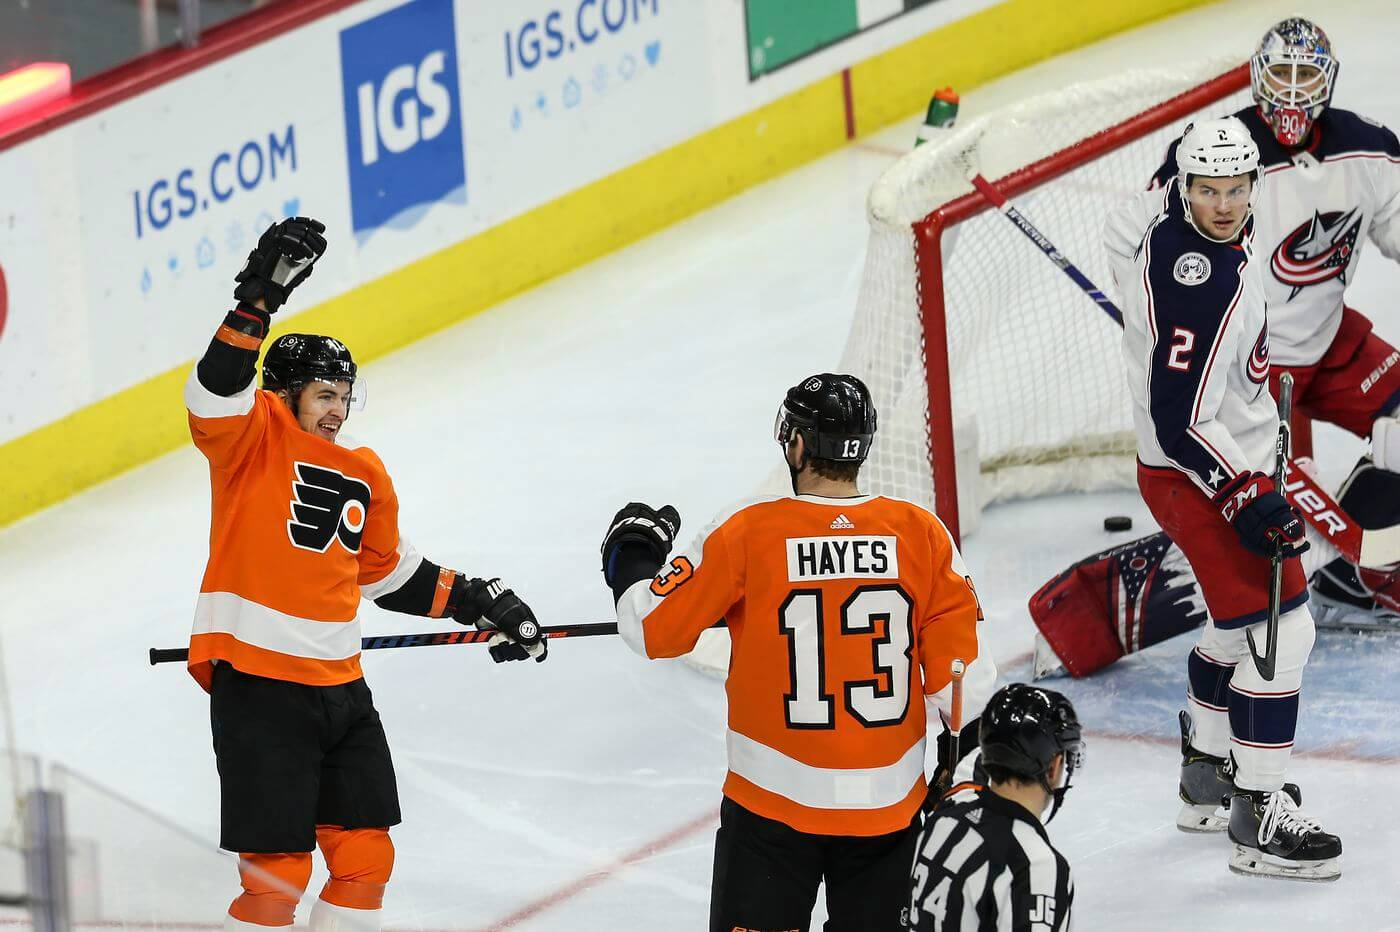 Flyers Will Prove A Formidable Foe In NHL Playoffs | Hockey Players Club Blog